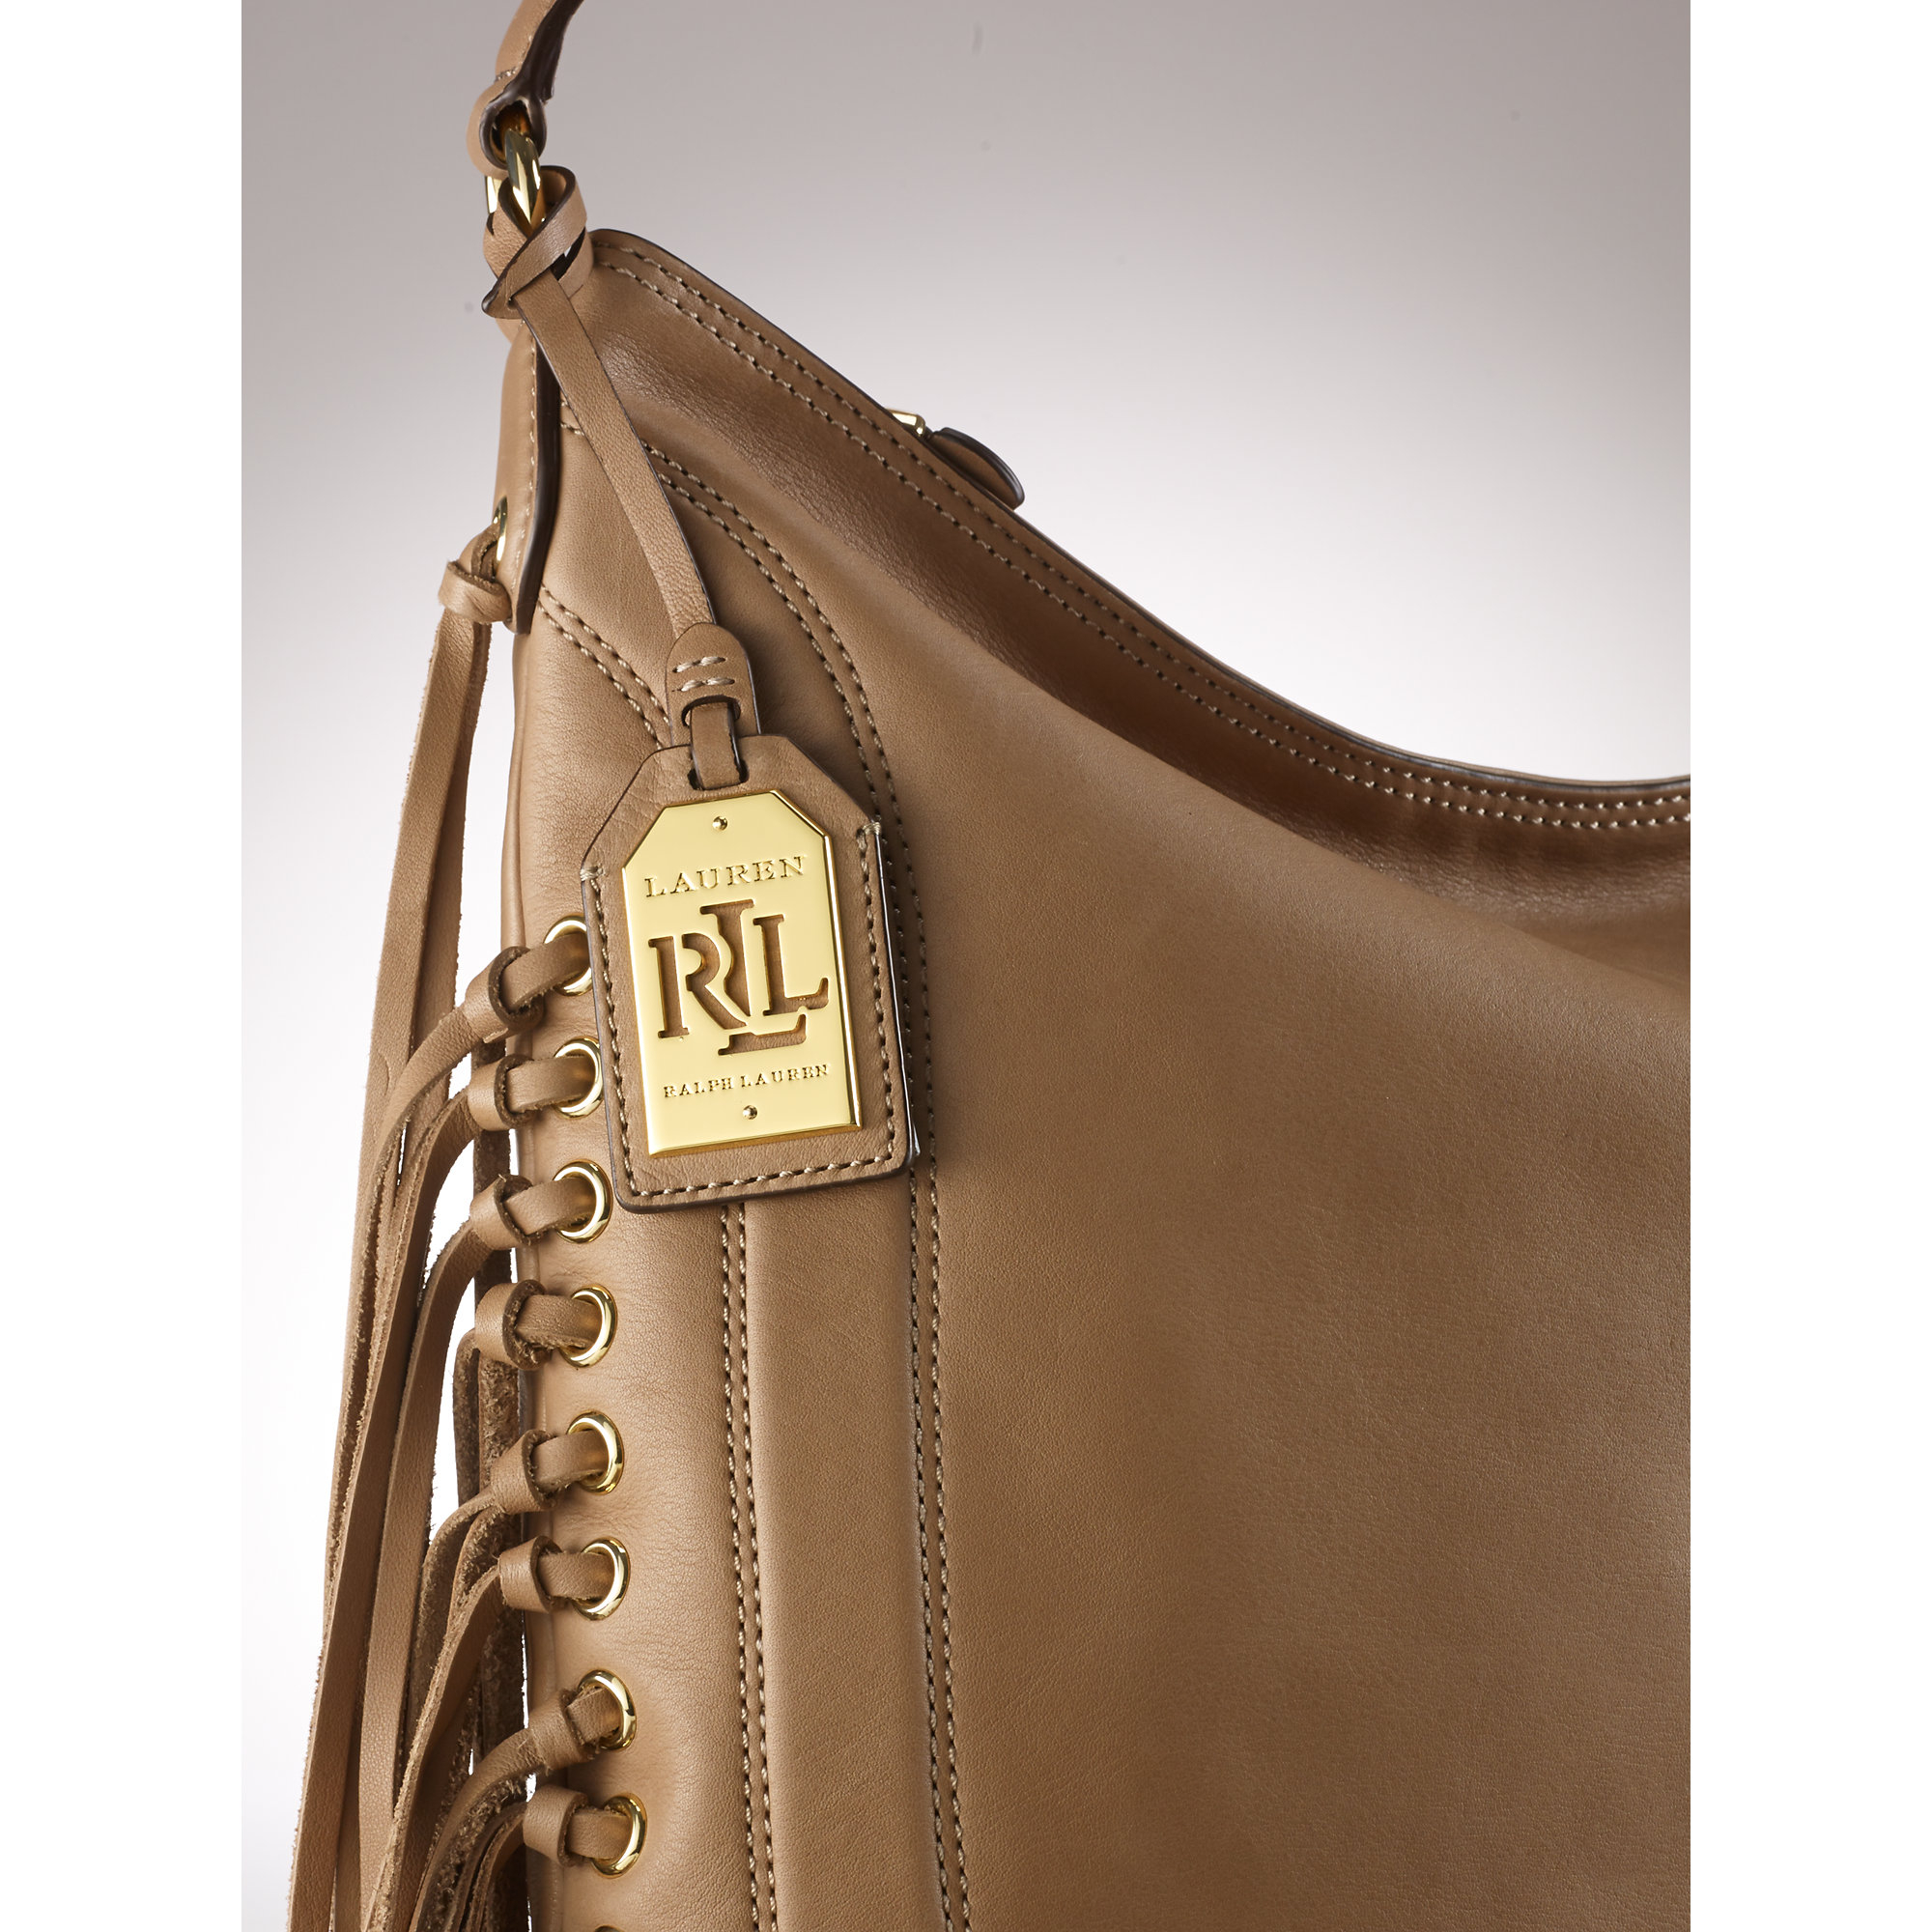 e95966fac028 Lyst - Ralph Lauren Leather Fleetwood Hobo in Natural